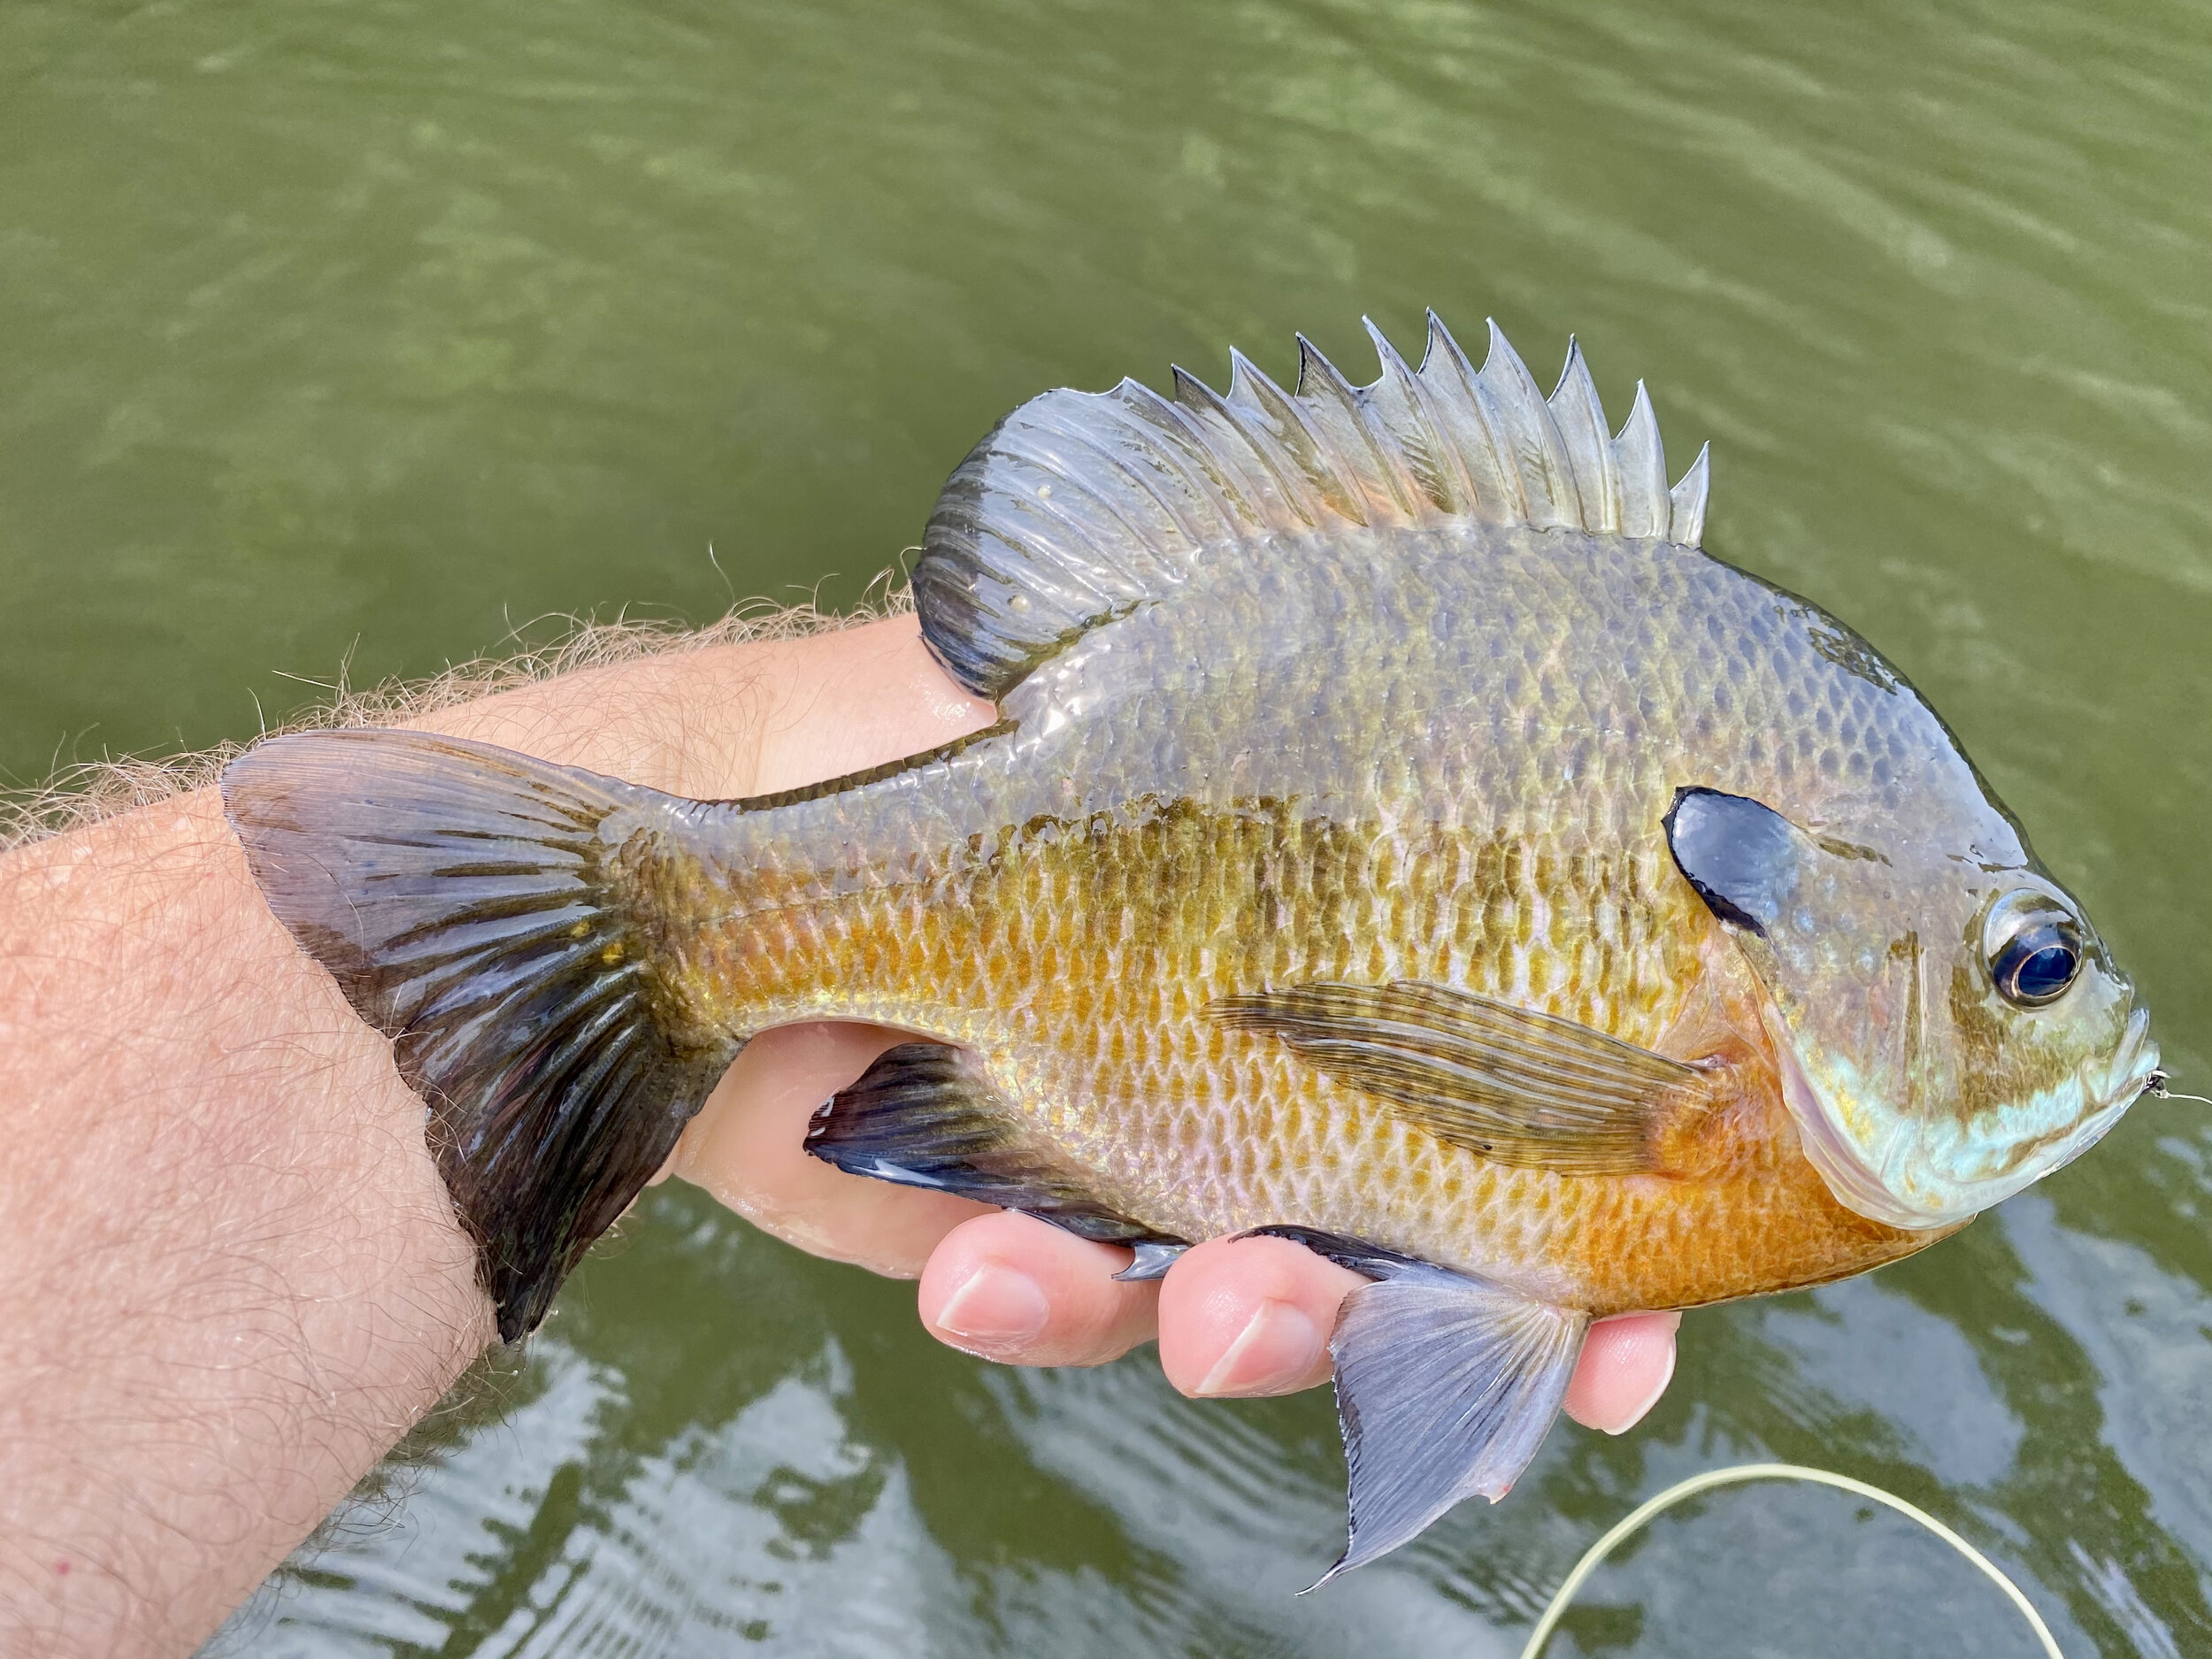 Big bluegills love beetle patterns but they will often inspect them for a while before committing.  Fish your beetle with long pauses and don't move the fly too much.  Fishing a beetle pattern can be painfully slow.